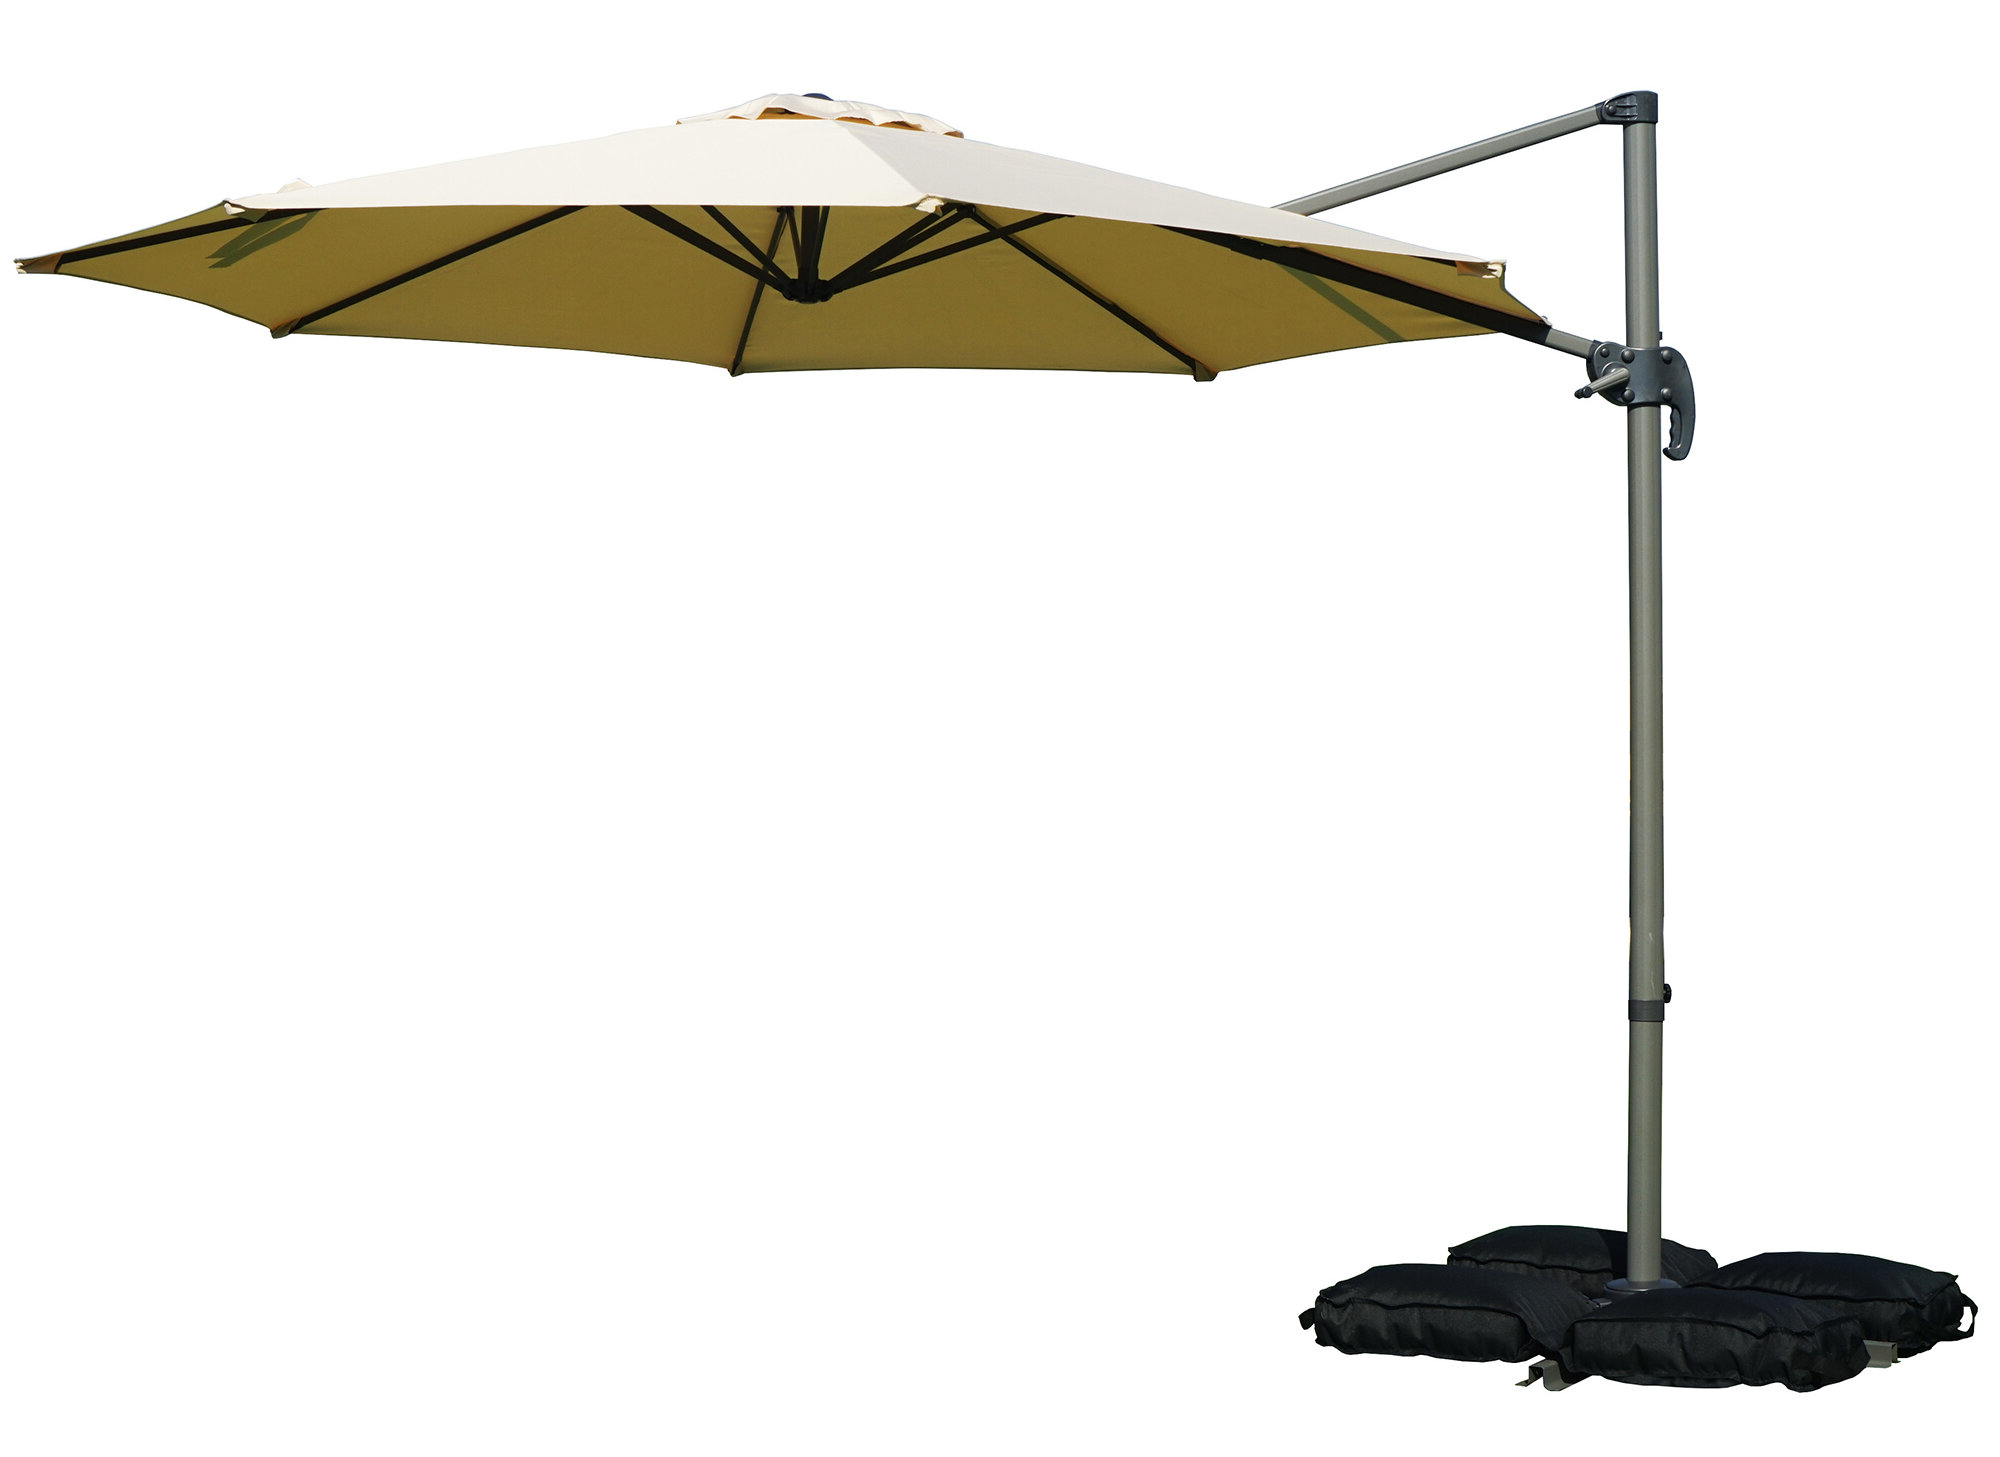 Tallulah Sunshade Hanging Outdoor Cantilever Umbrellas Intended For Famous Tottenham Patio Hanging Offset 10' Cantilever Umbrella (View 15 of 20)